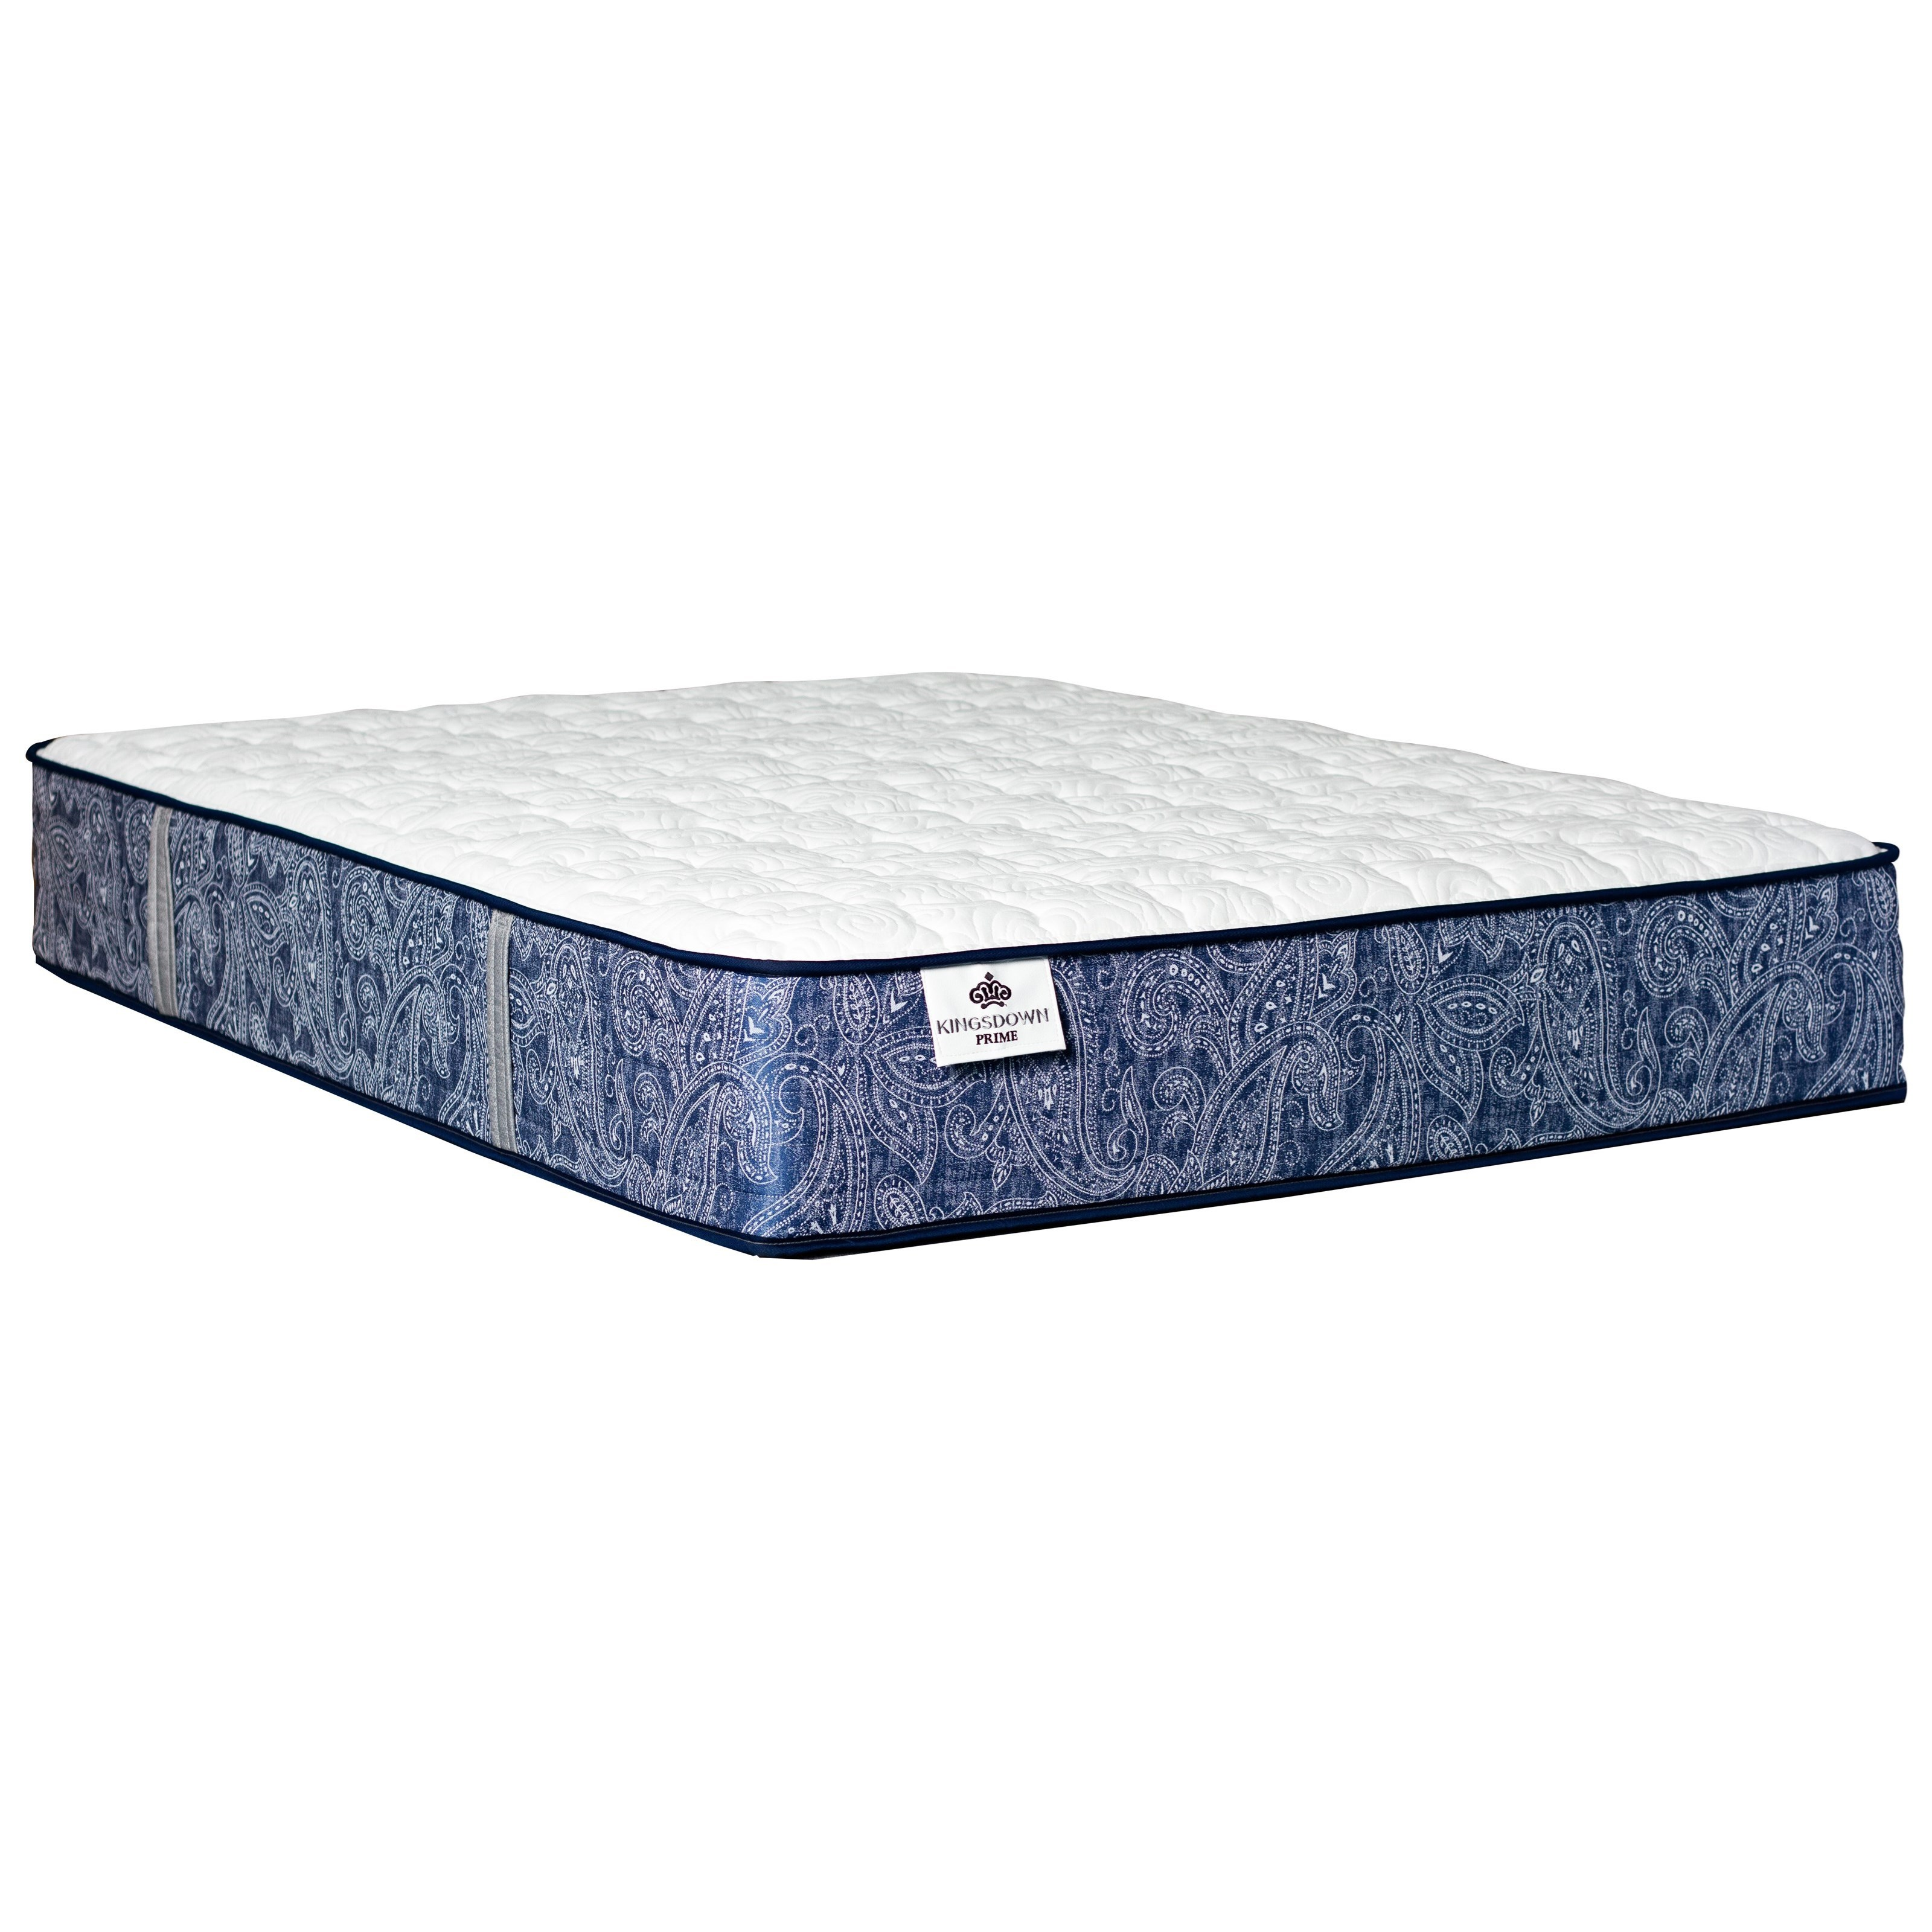 "Merrivale Firm Full 13"" Firm Coil on Coil Mattress by Kingsdown at Baer's Furniture"